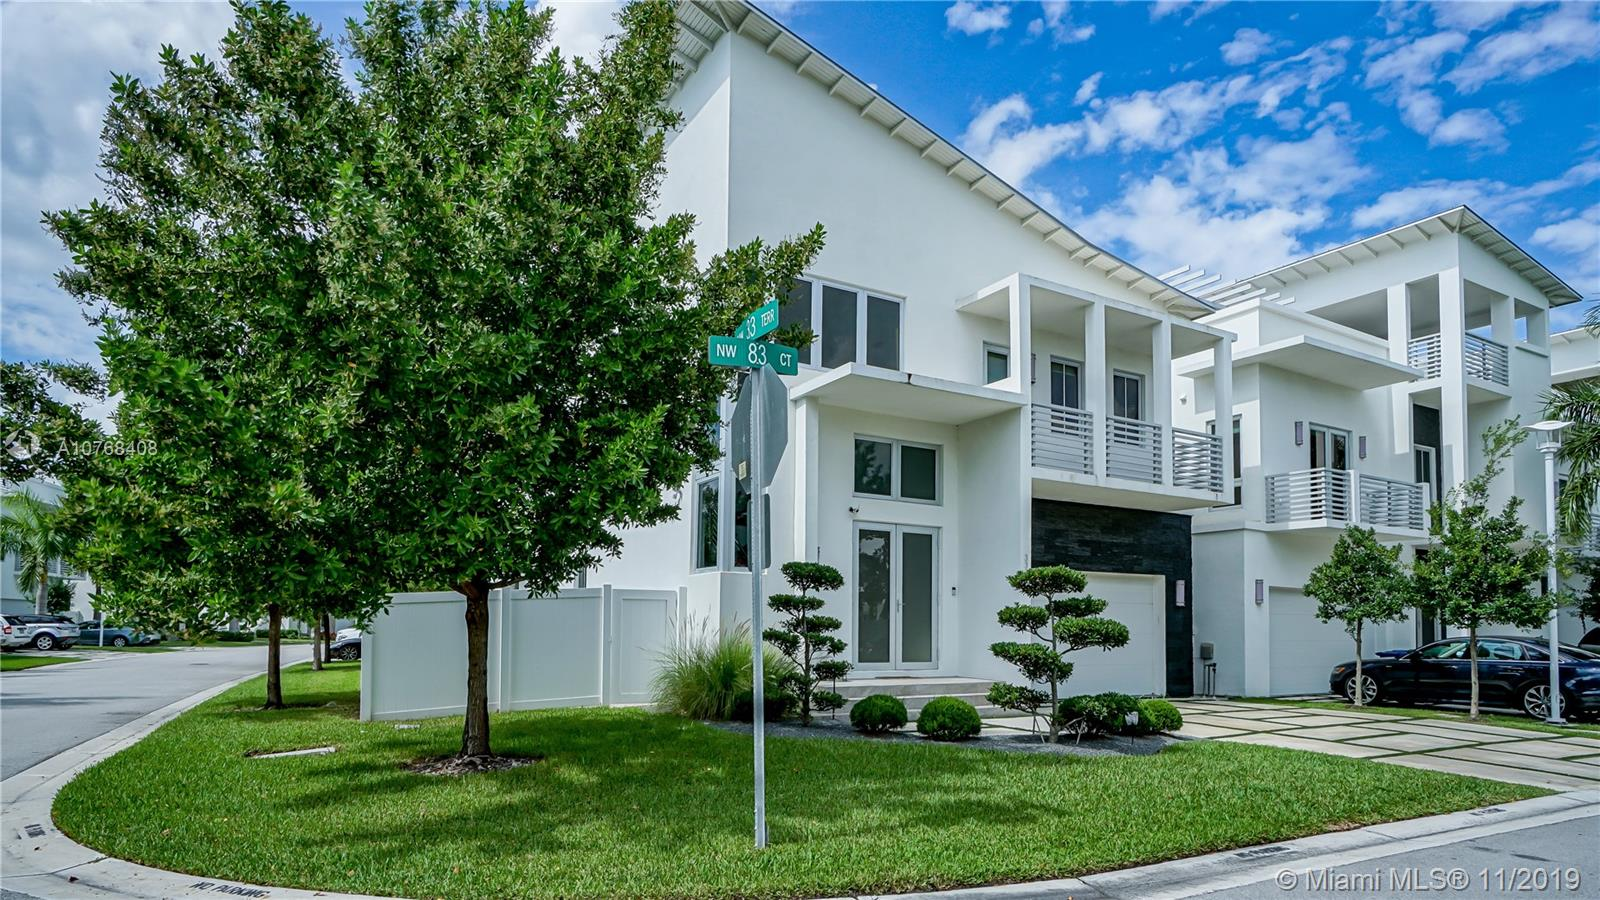 3320 NW 83rd Ct  For Sale A10768408, FL